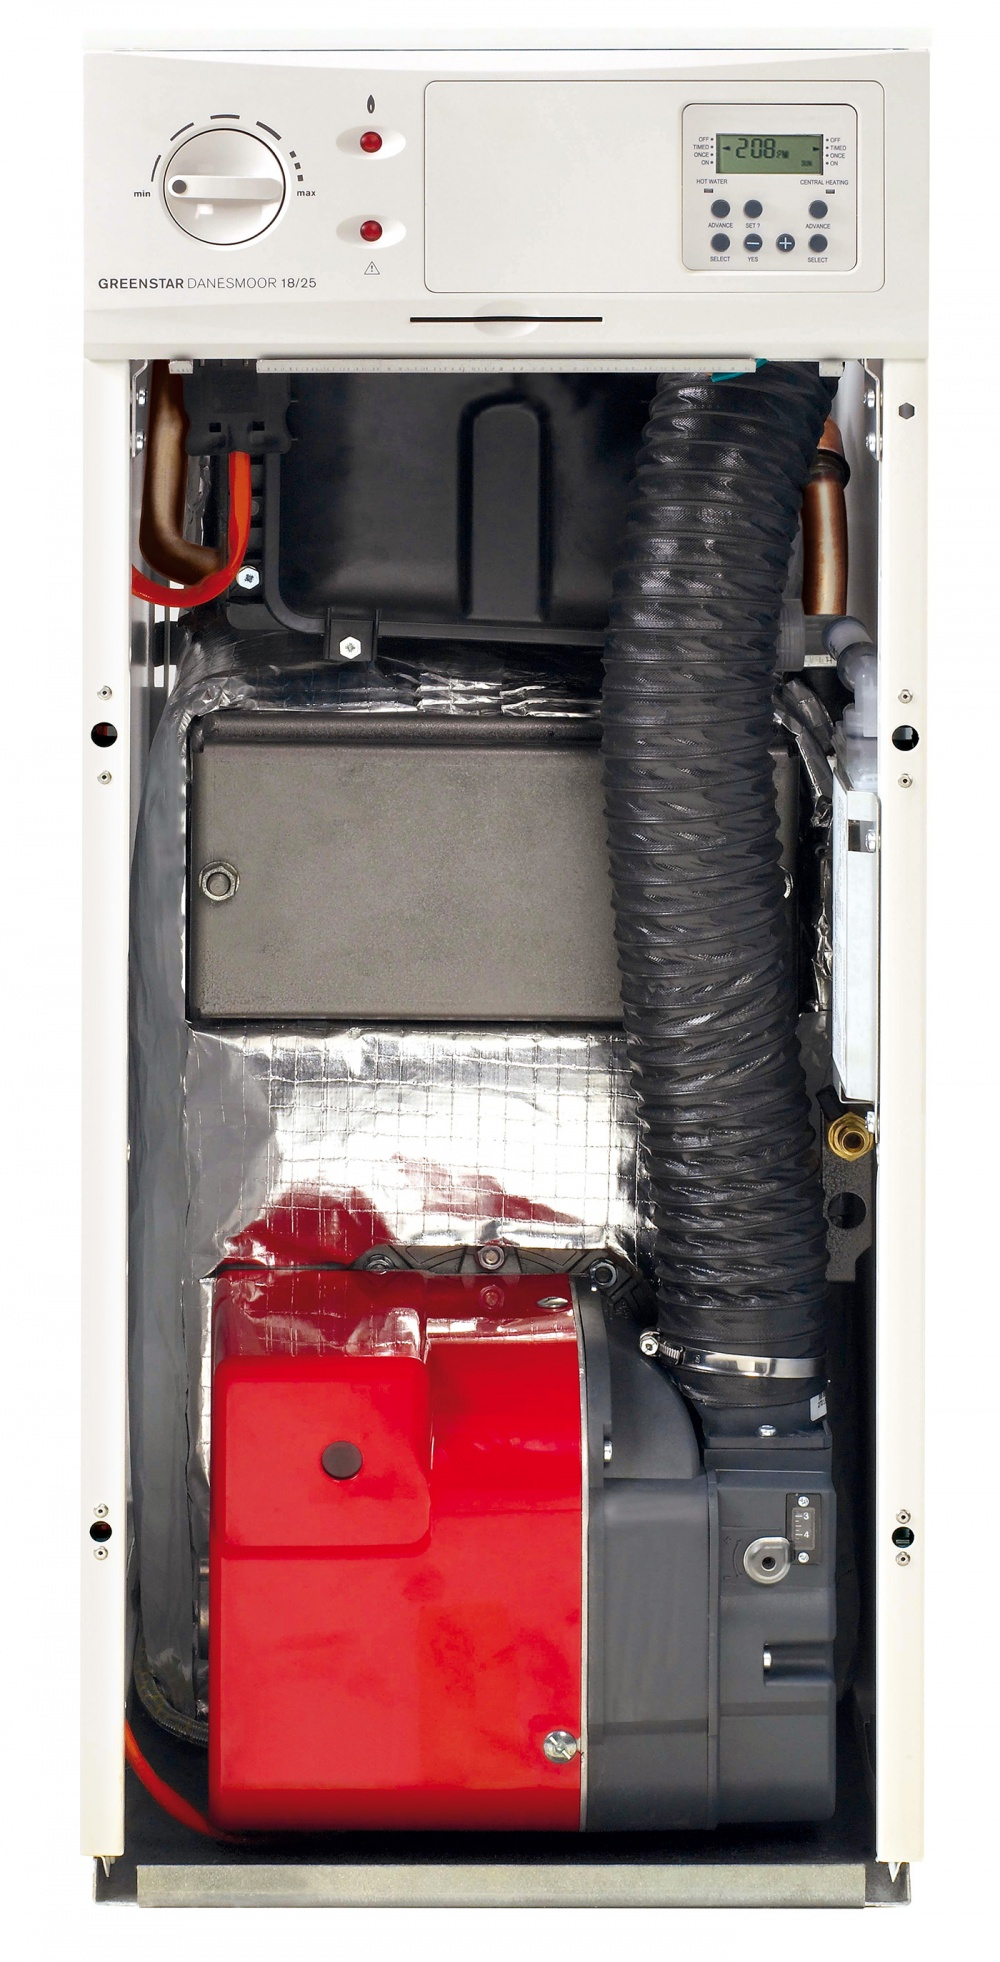 Wiring Diagrams Worcester Bosch Group Boilers And Manuals Diagram Internal View